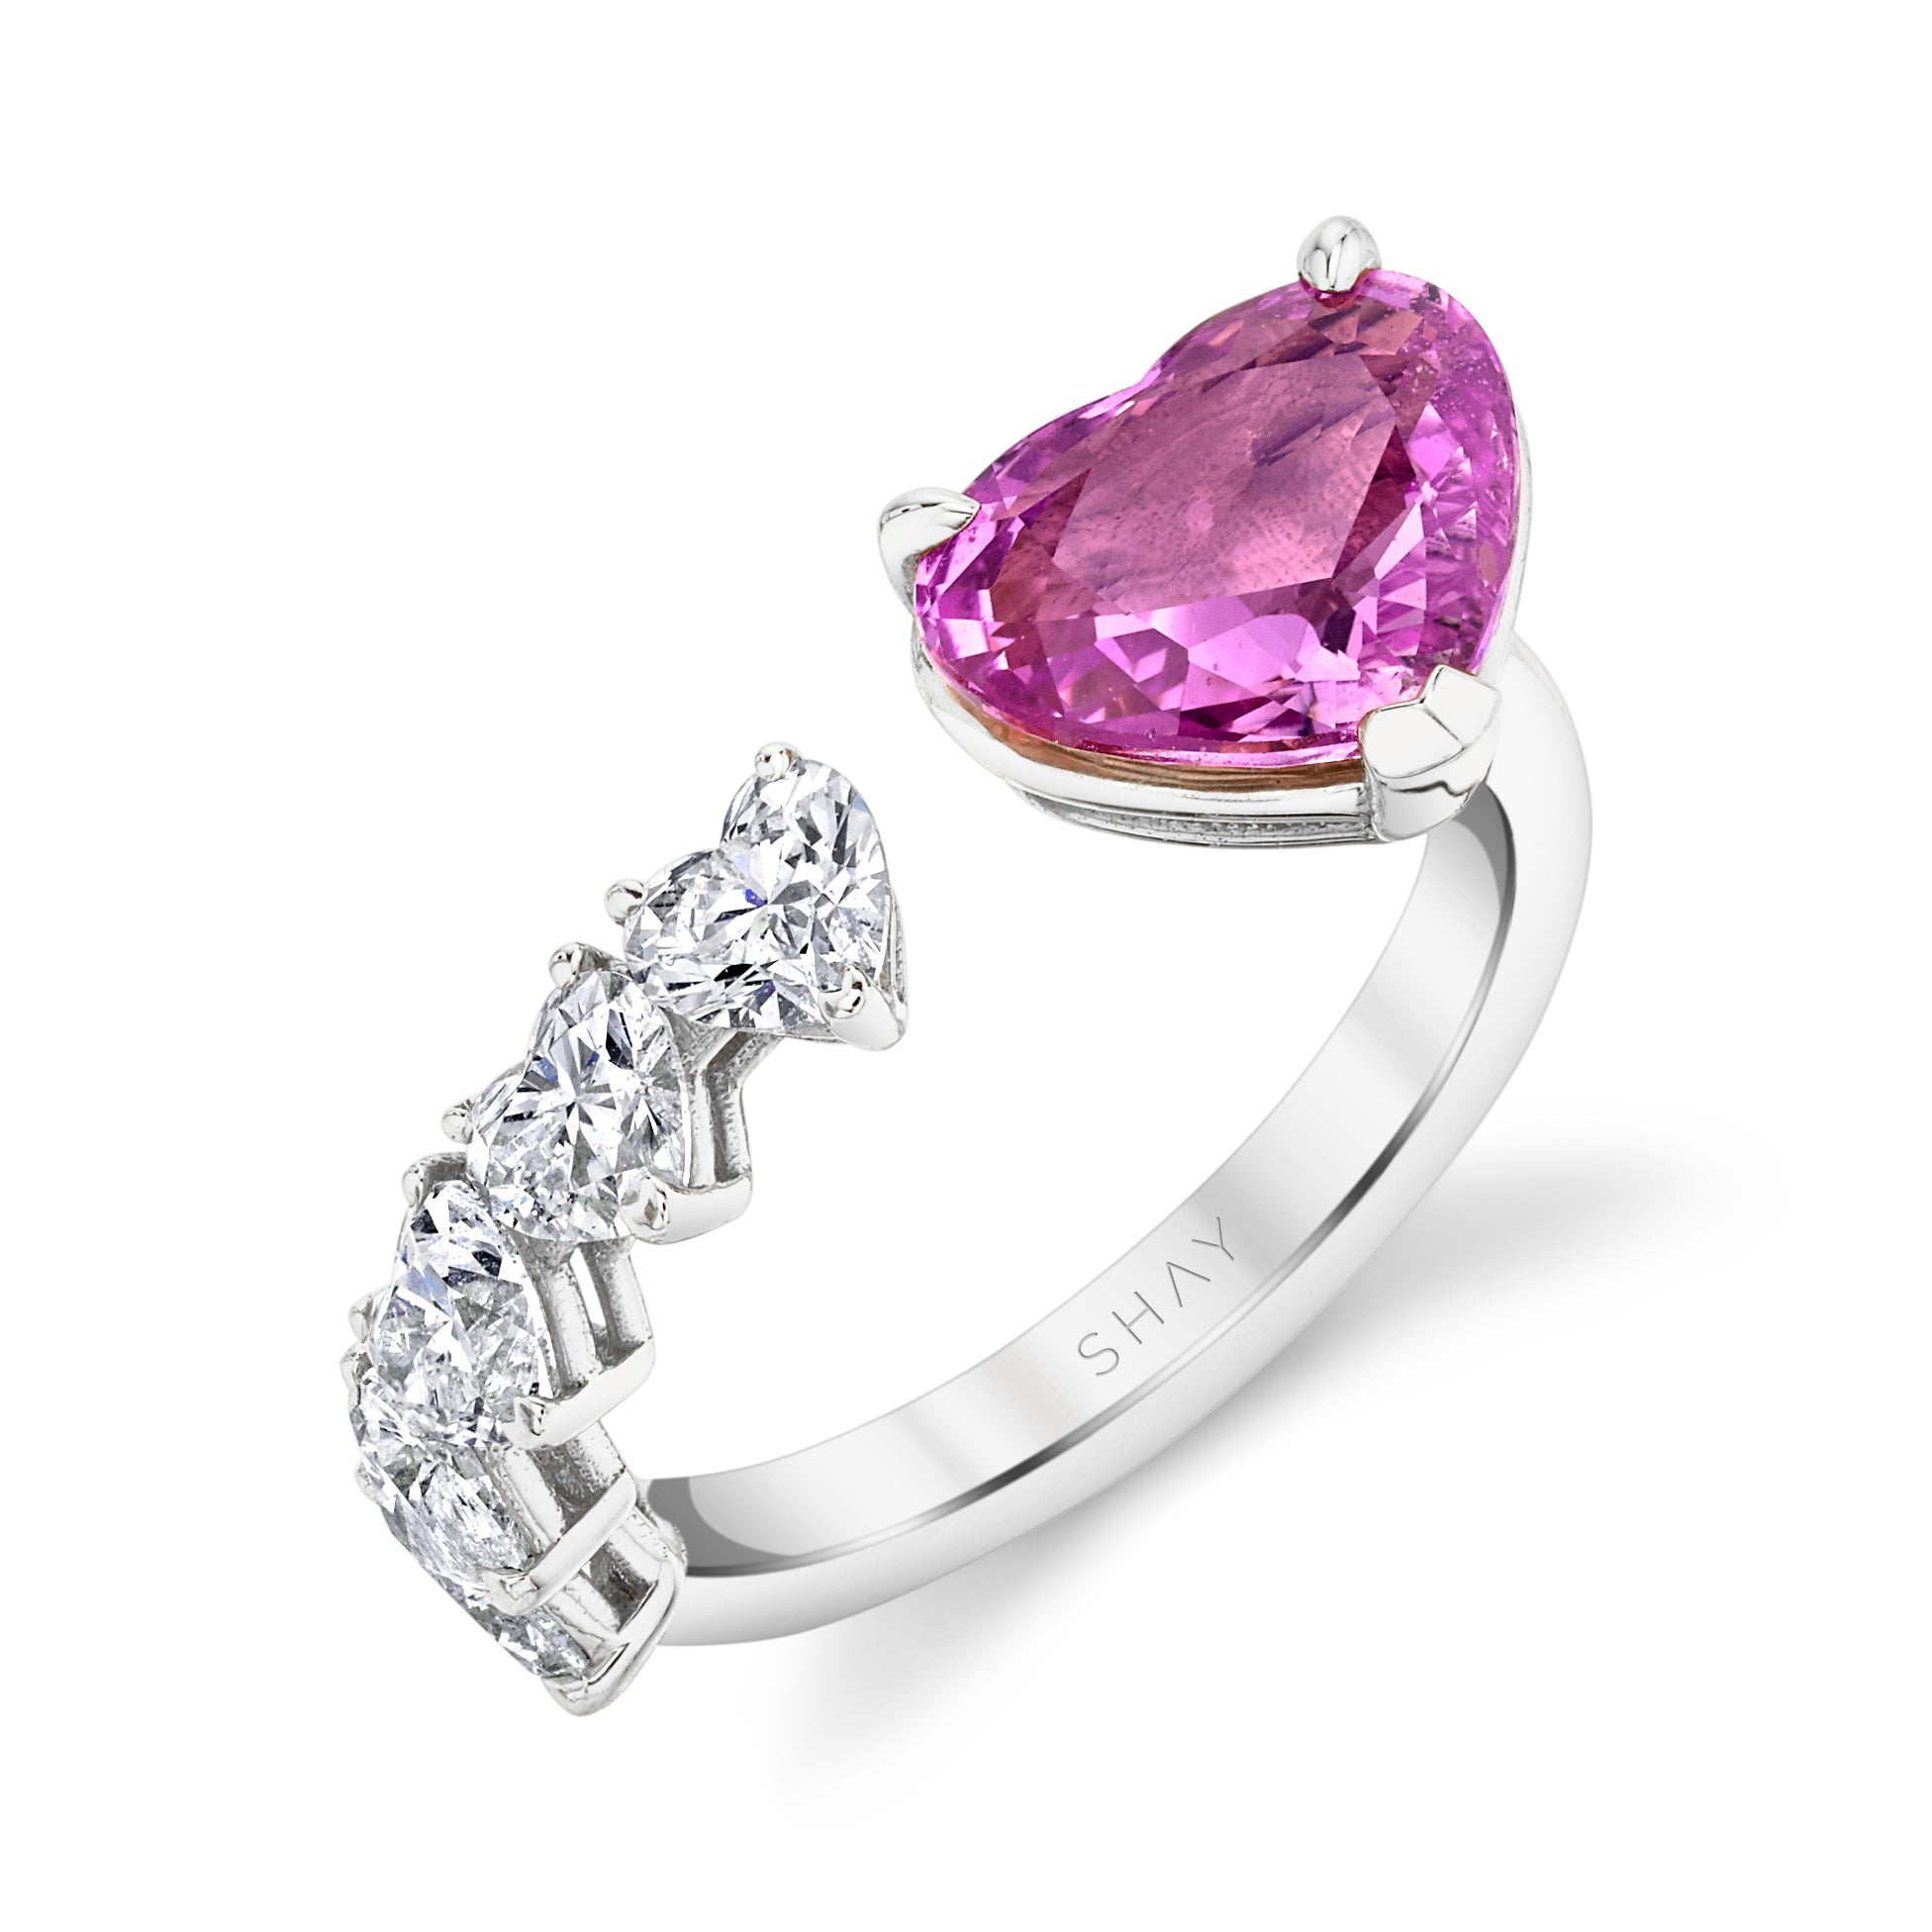 FLOATING PINK SAPPHIRE HEART & DIAMOND RING